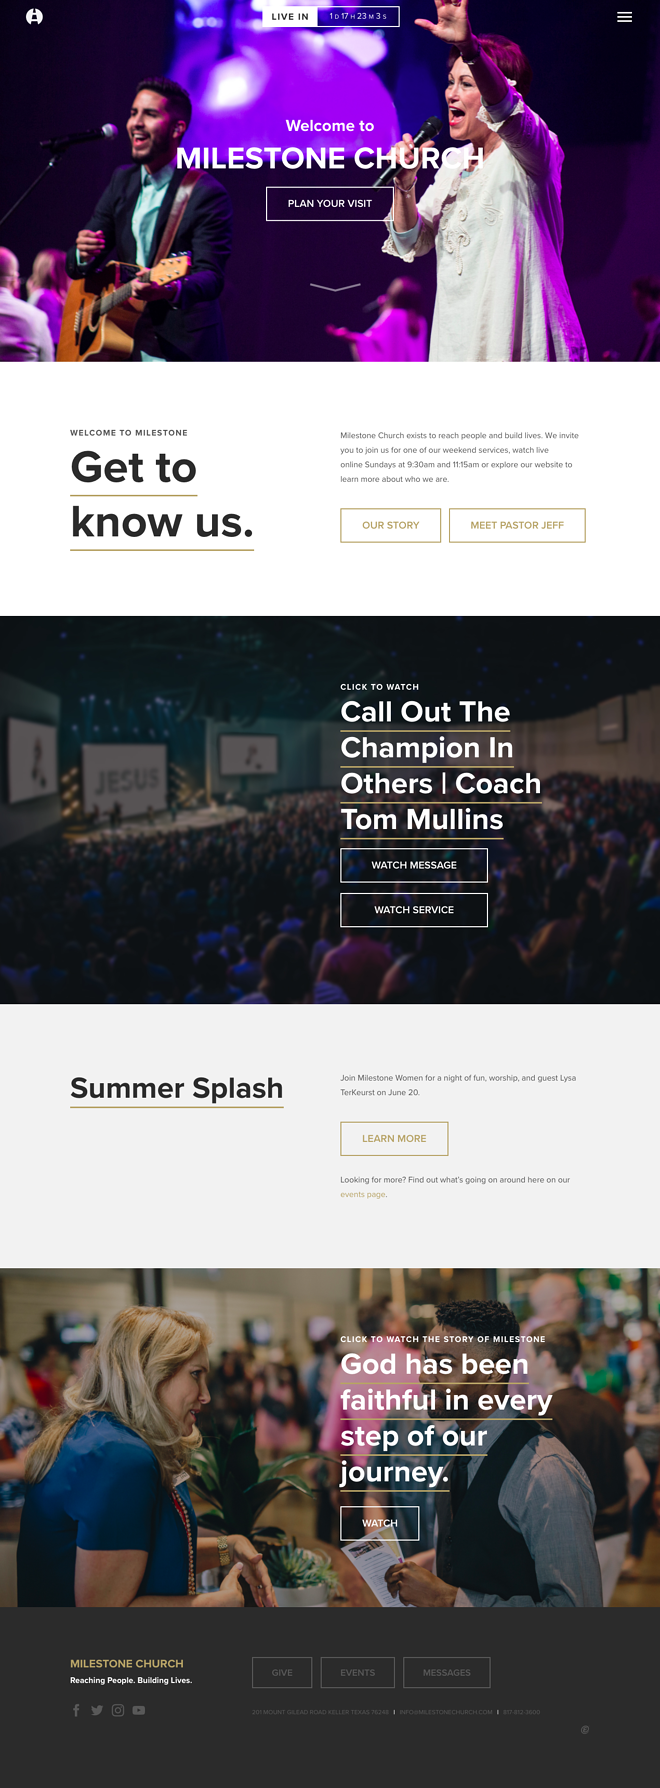 6-awesome-multi-site-church-websites-for-inspiration-milestone.png